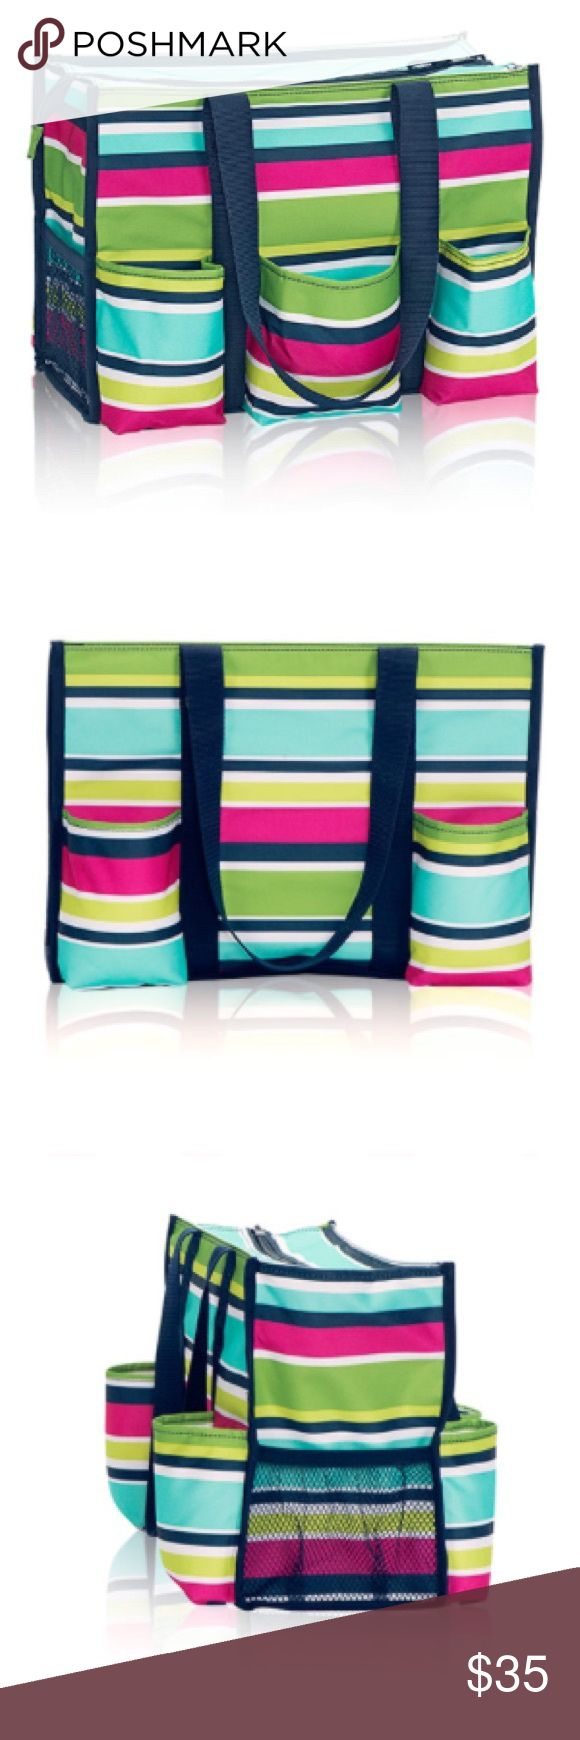 "🆕 Listing! Thirty-One Zip Top Organizing Tote Brand new, in original packaging Zip Top Organizing Utility Tote form Thirty-One. Preppy Pop color is full of bright colored stripes. Perfect bag for work, vacation, diaper bag and so much more! Dimensions: Approx. 10.75""H x 14.5""L x 6.5""D🚫TRADES Thirty-One Bags"